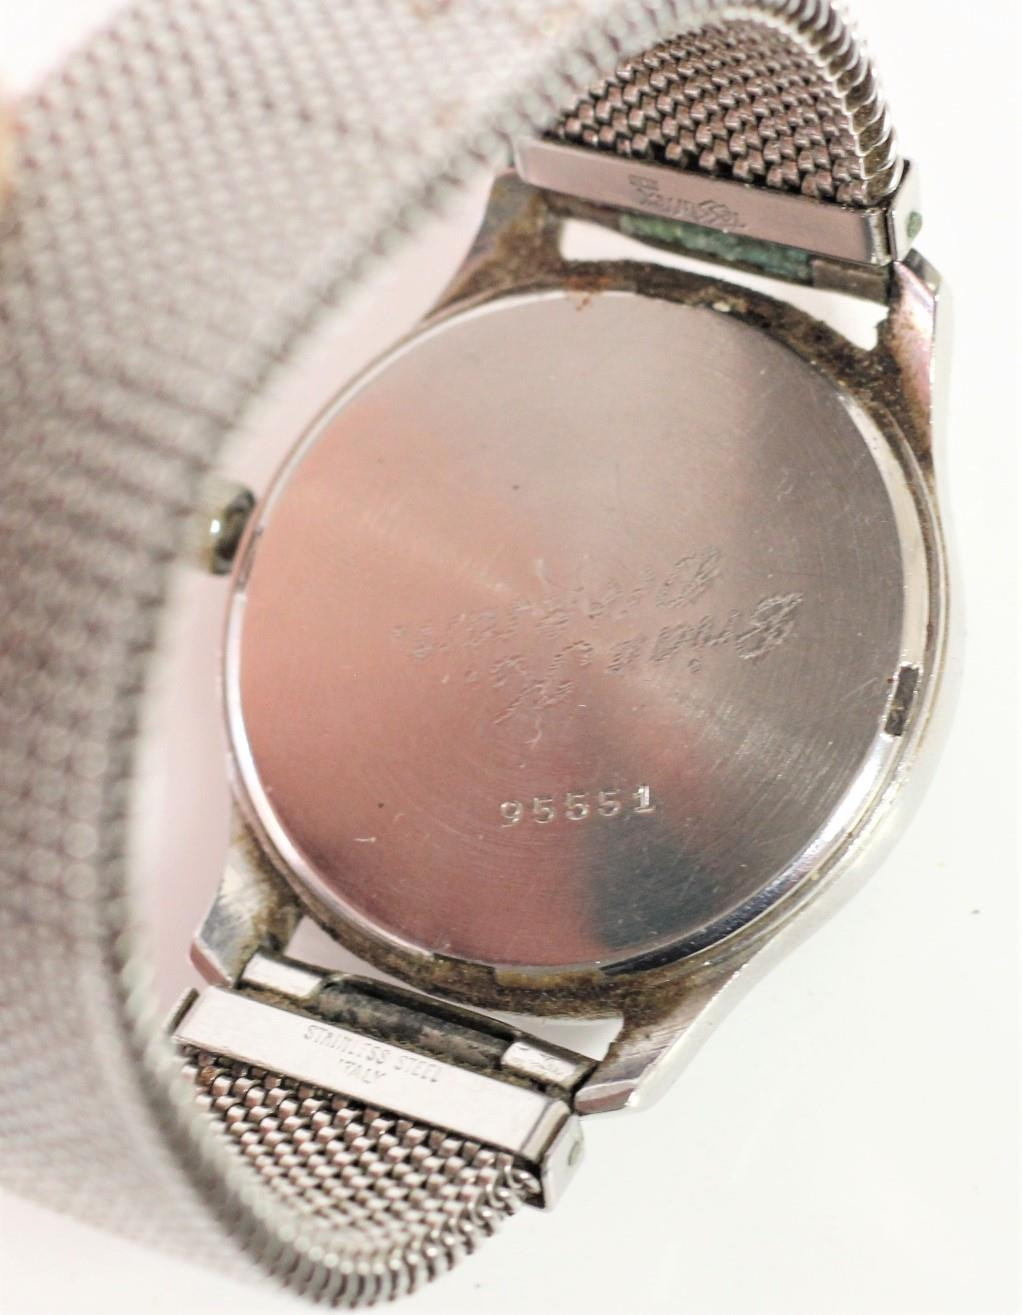 Glycine, Bienne - Geneve, a stainless steel manual wind military wristwatch, luminour numerals, - Image 2 of 3